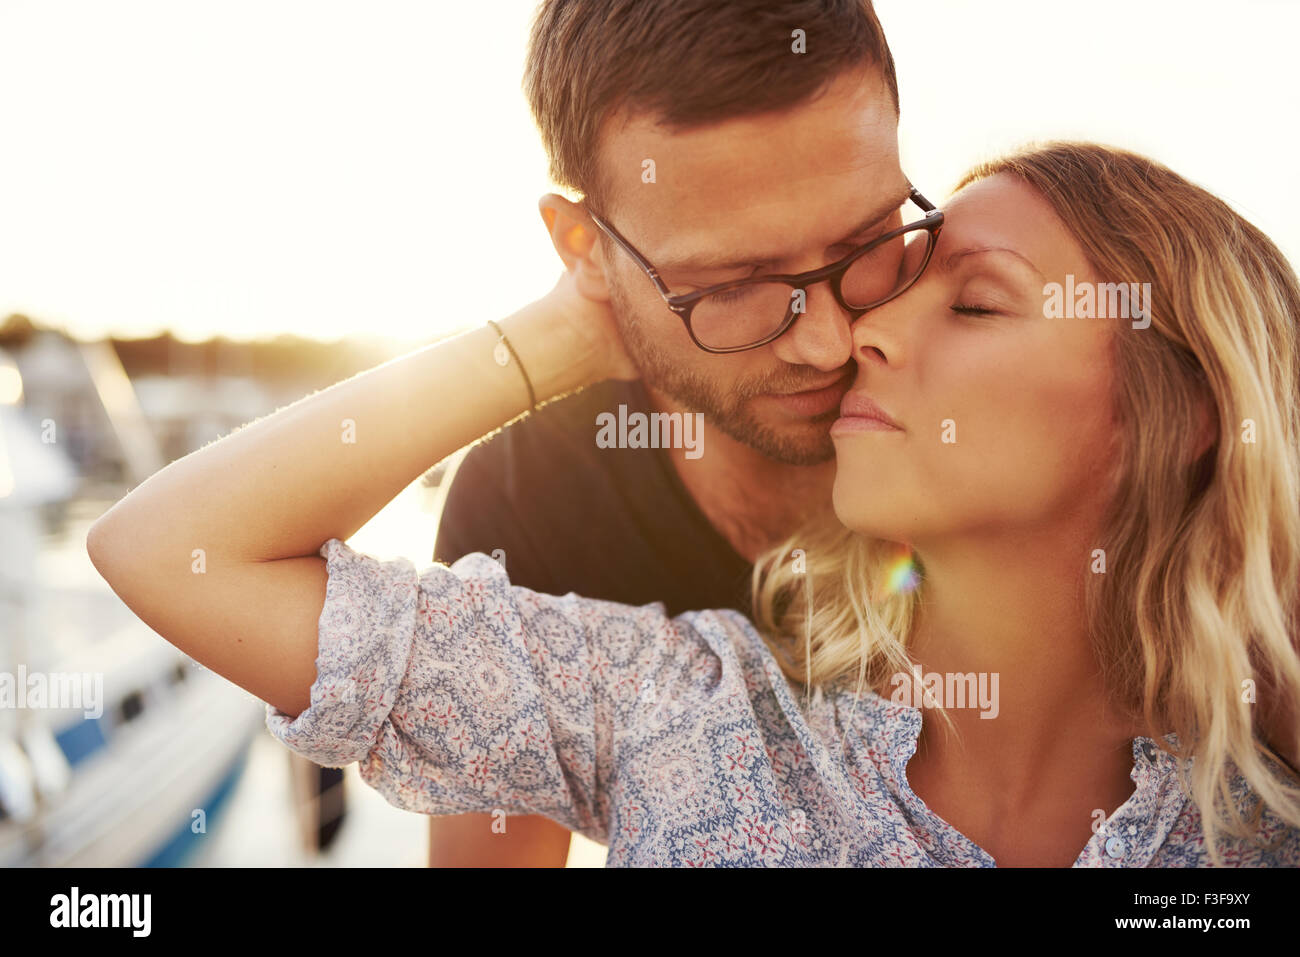 Couple Kissing On A Summer Evening, Blonde Woman and Man with Glasses - Stock Image